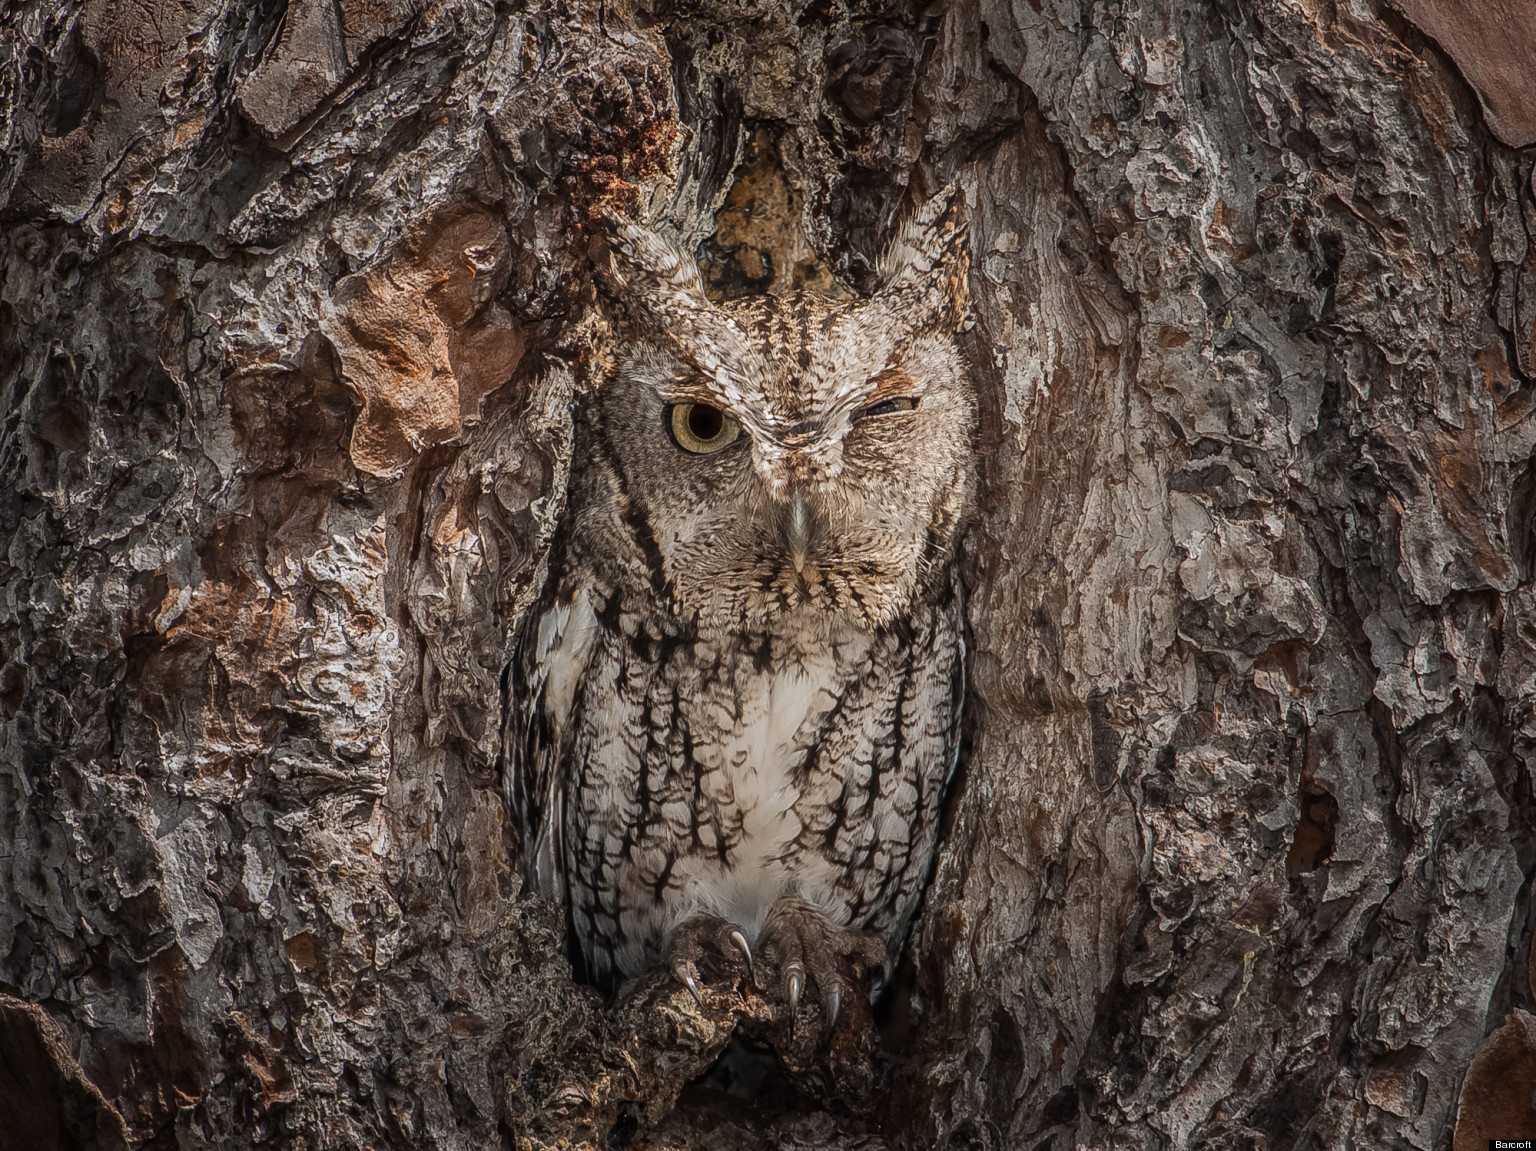 Eastern Screech Owl Is Perfectly Camouflaged In Georgia Forest 1536x1151